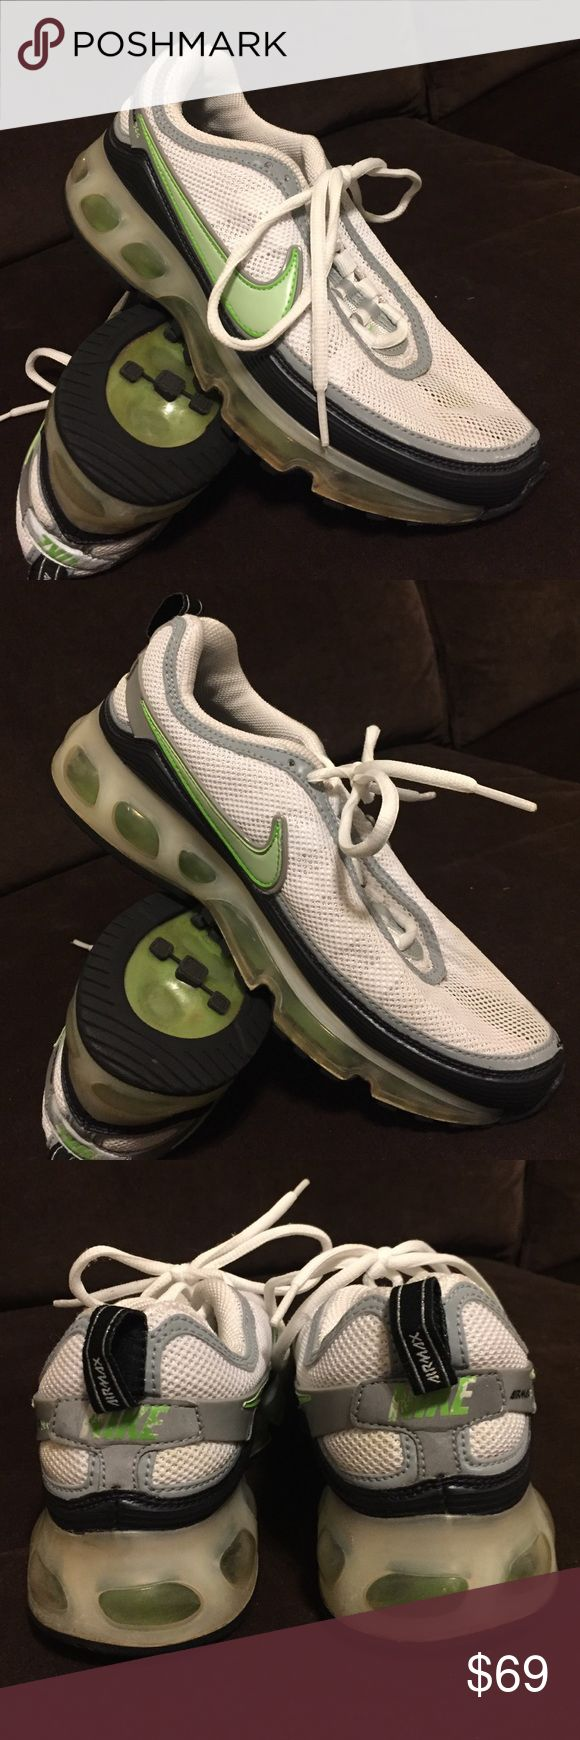 Nike air max 360 white pea green size 7 38 vintage Mint vintage Nike air max 360 white black pea of green. Size 7 38 EUR full and tight air bladders Nike Shoes Athletic Shoes